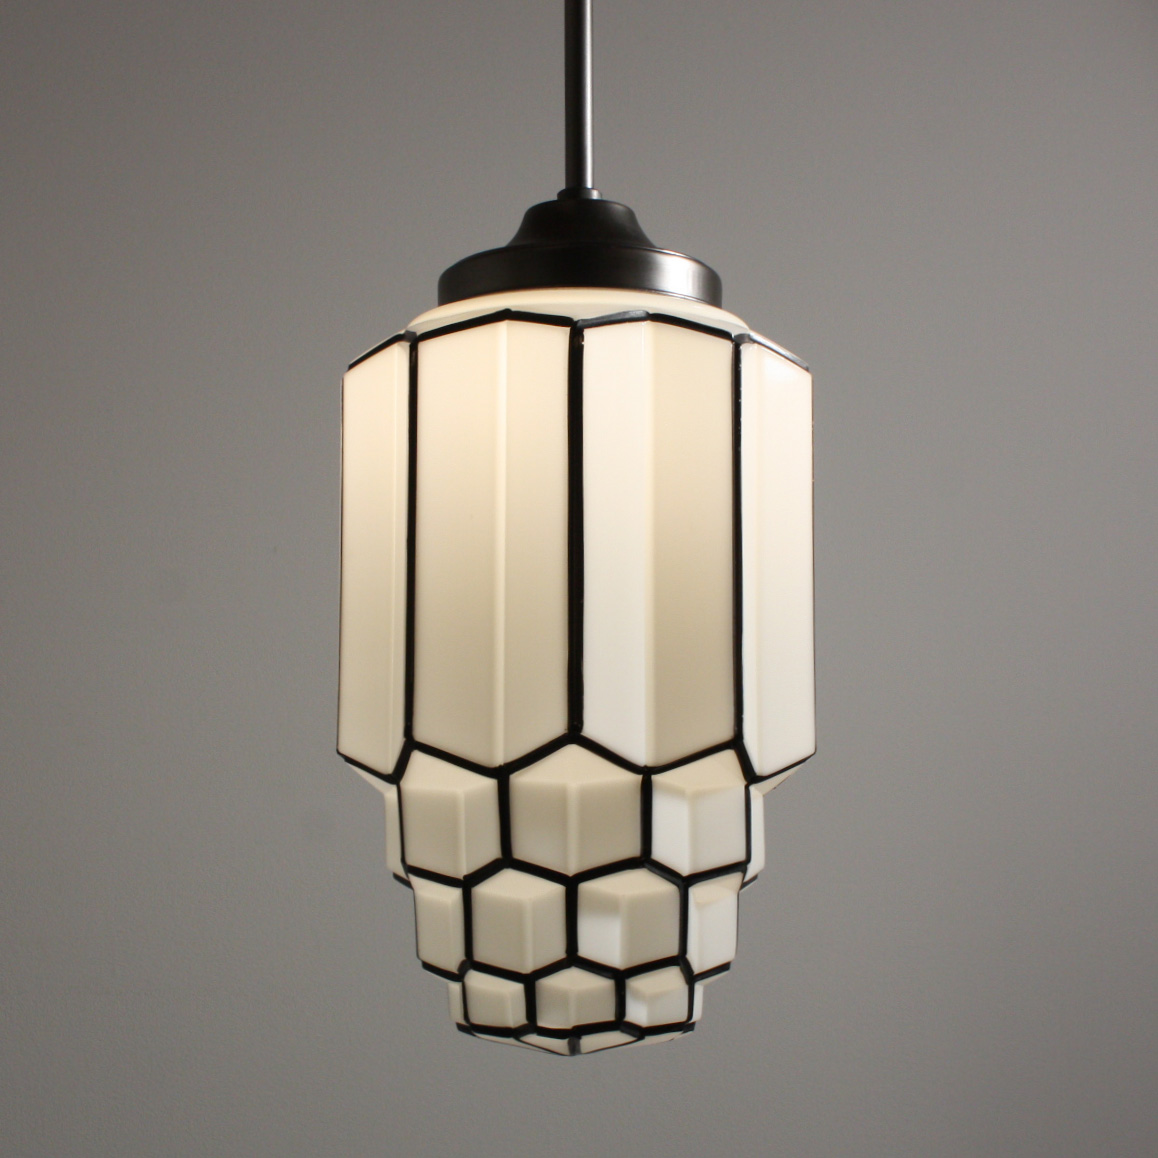 Antique Art Deco Pendant Light With Skyscraper Globe C